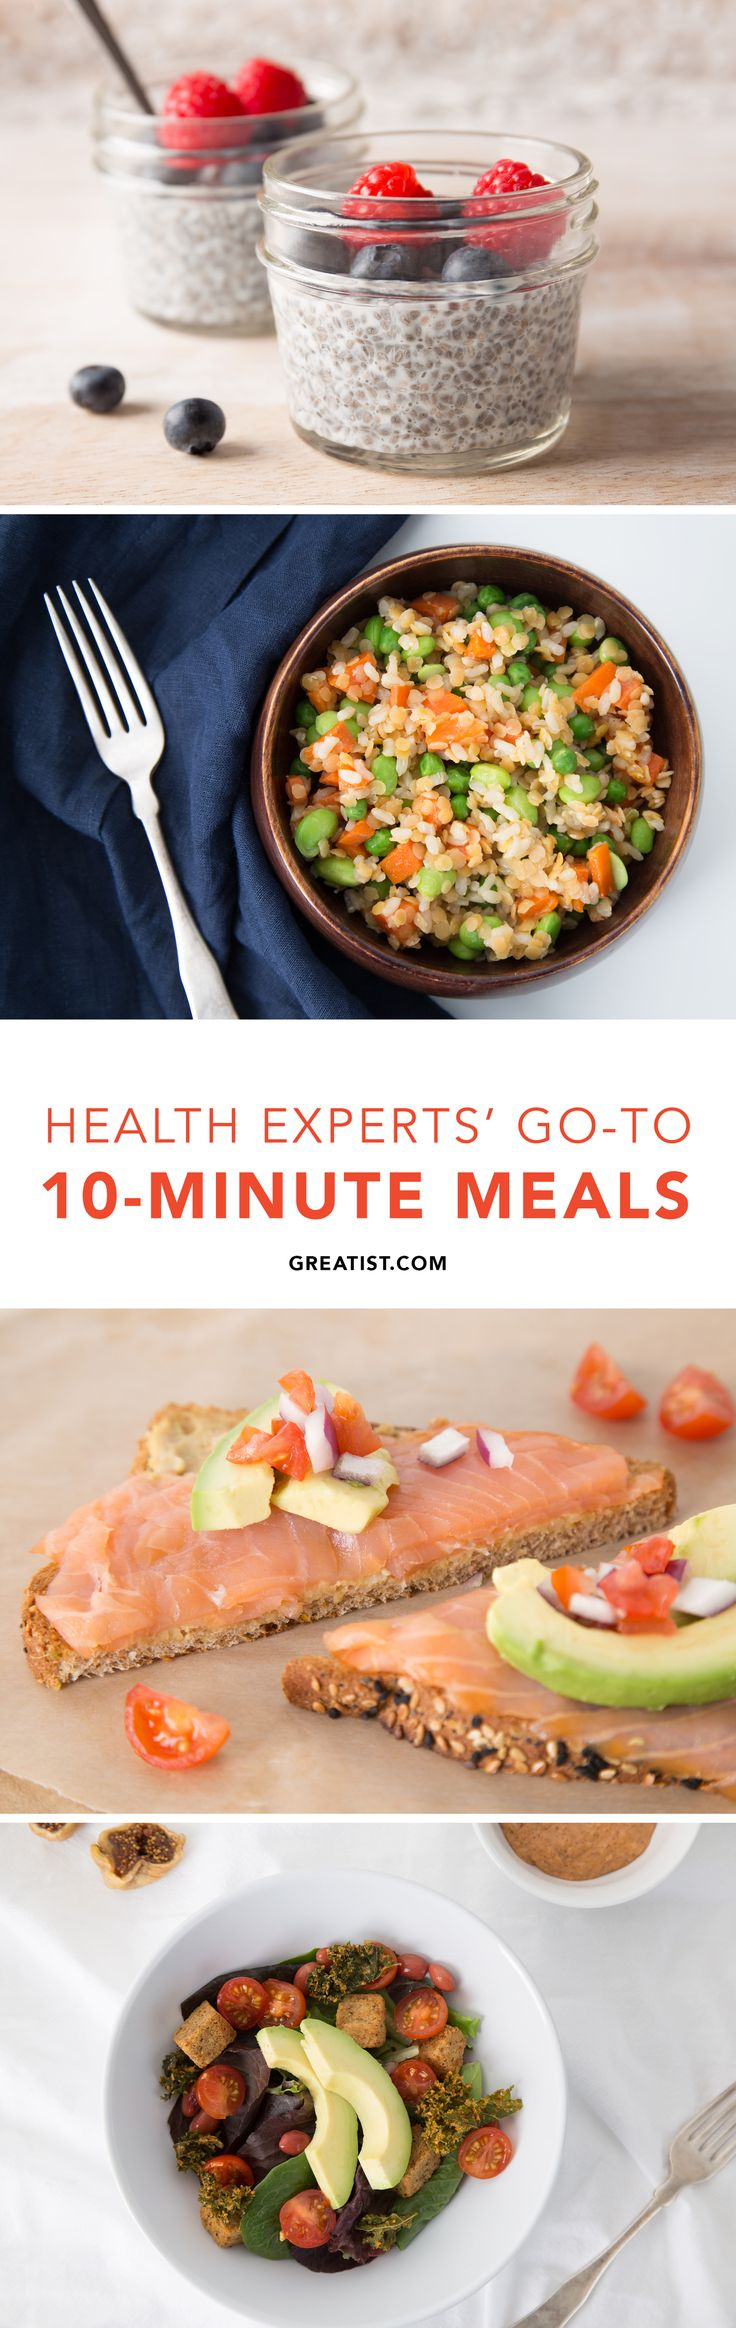 Fast Food Doesn't Have to Be Unhealthy #10minutemeals #healthy #recipes